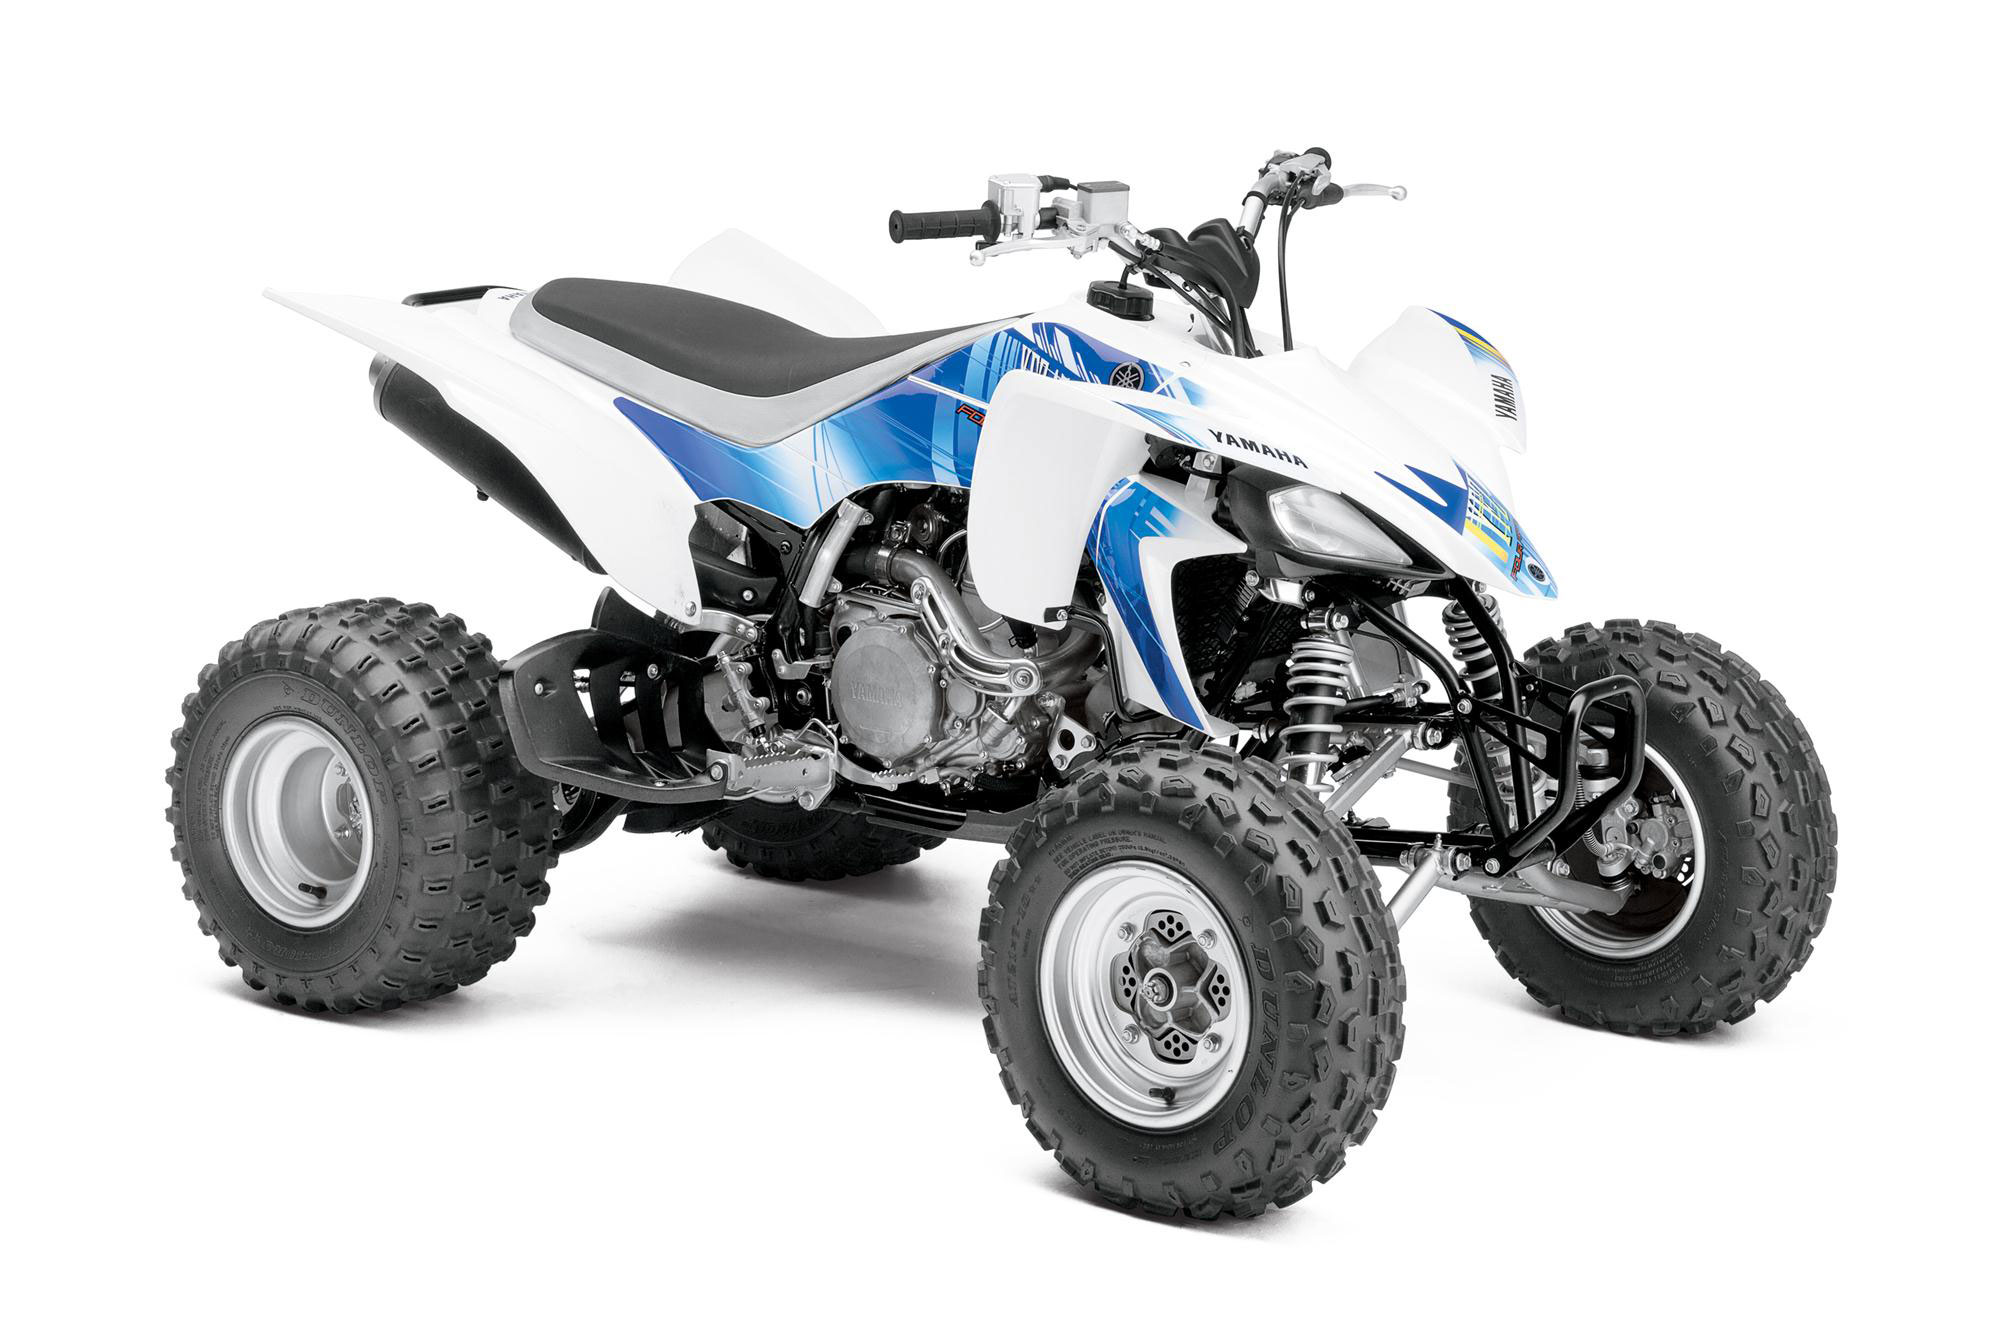 2013 yamaha raptor yfz450 review. Black Bedroom Furniture Sets. Home Design Ideas